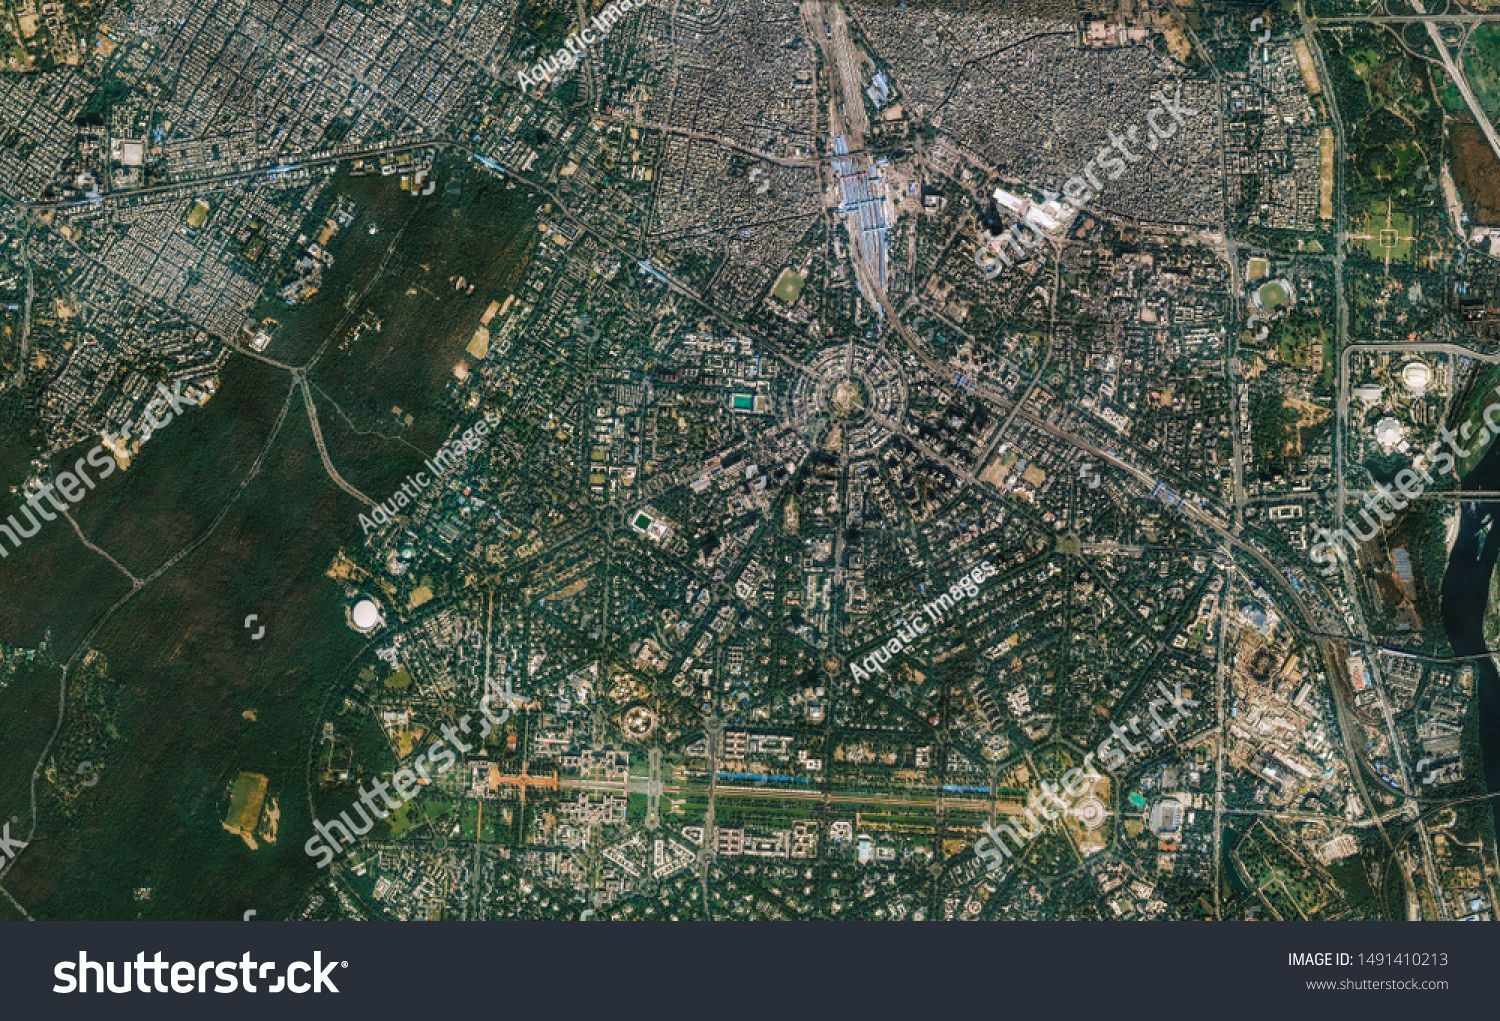 High Resolution Satellite Image Of New Delhi India Isolated Imagery Of India Elements Of This Image Furnished By Satellite Image Stock Illustration Imagery